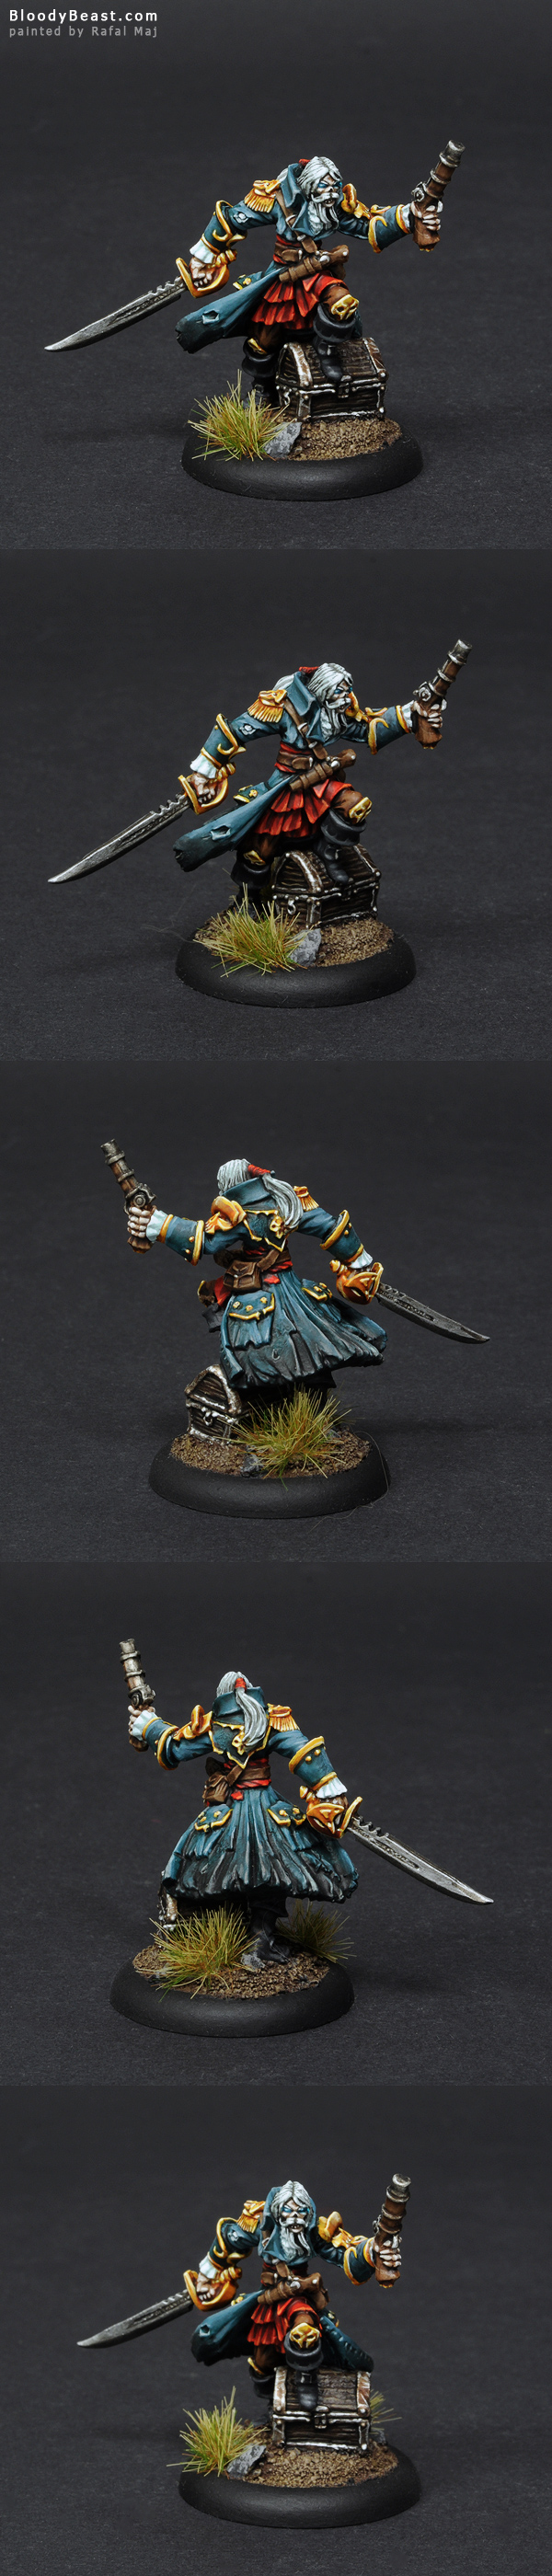 Captain Razig, Undead Pirate painted by Rafal Maj (BloodyBeast.com)